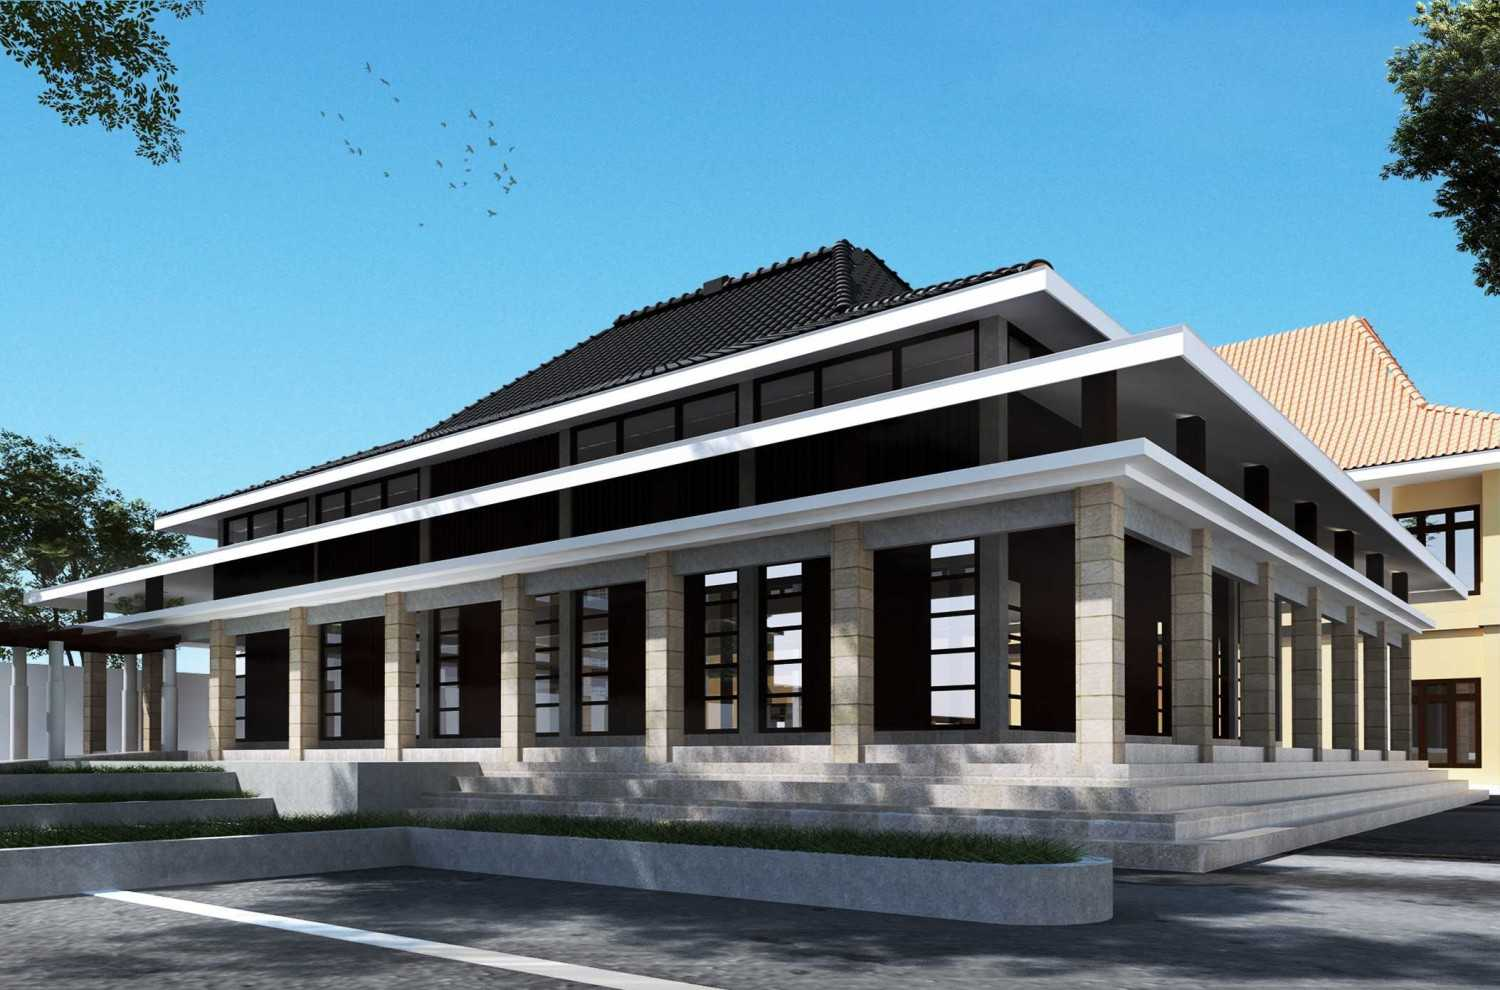 Arsatama Architect Pcnu Office  - Cilacap Cilacap, Central Java Cilacap, Central Java Aula-Pcnucilacap  27043